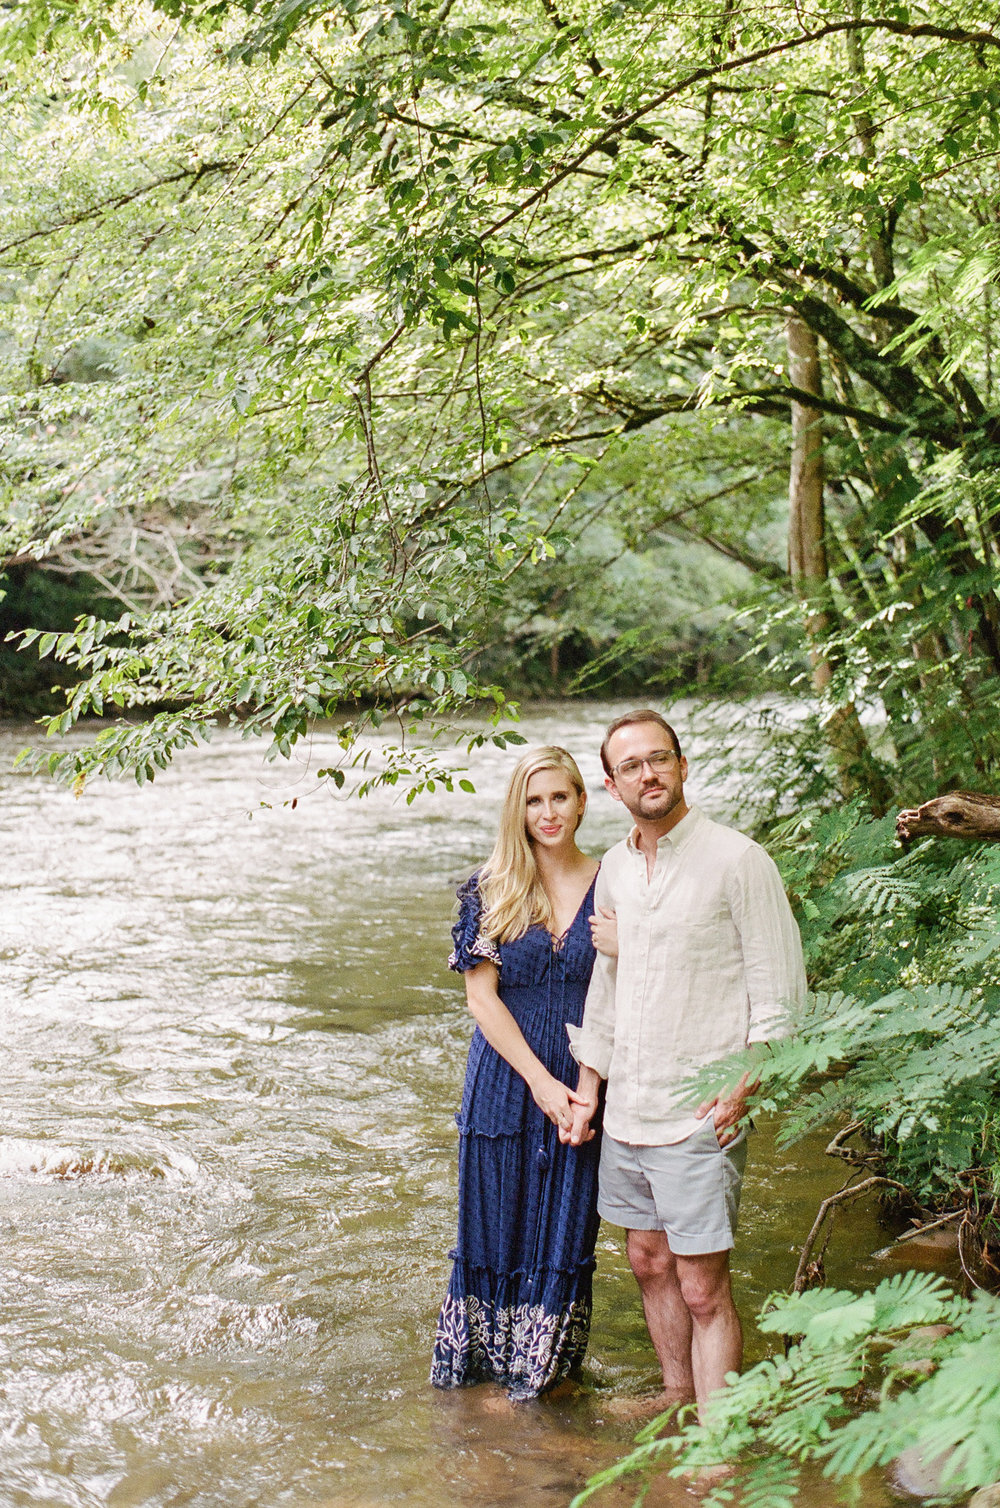 Kara & Patrick in Tennessee